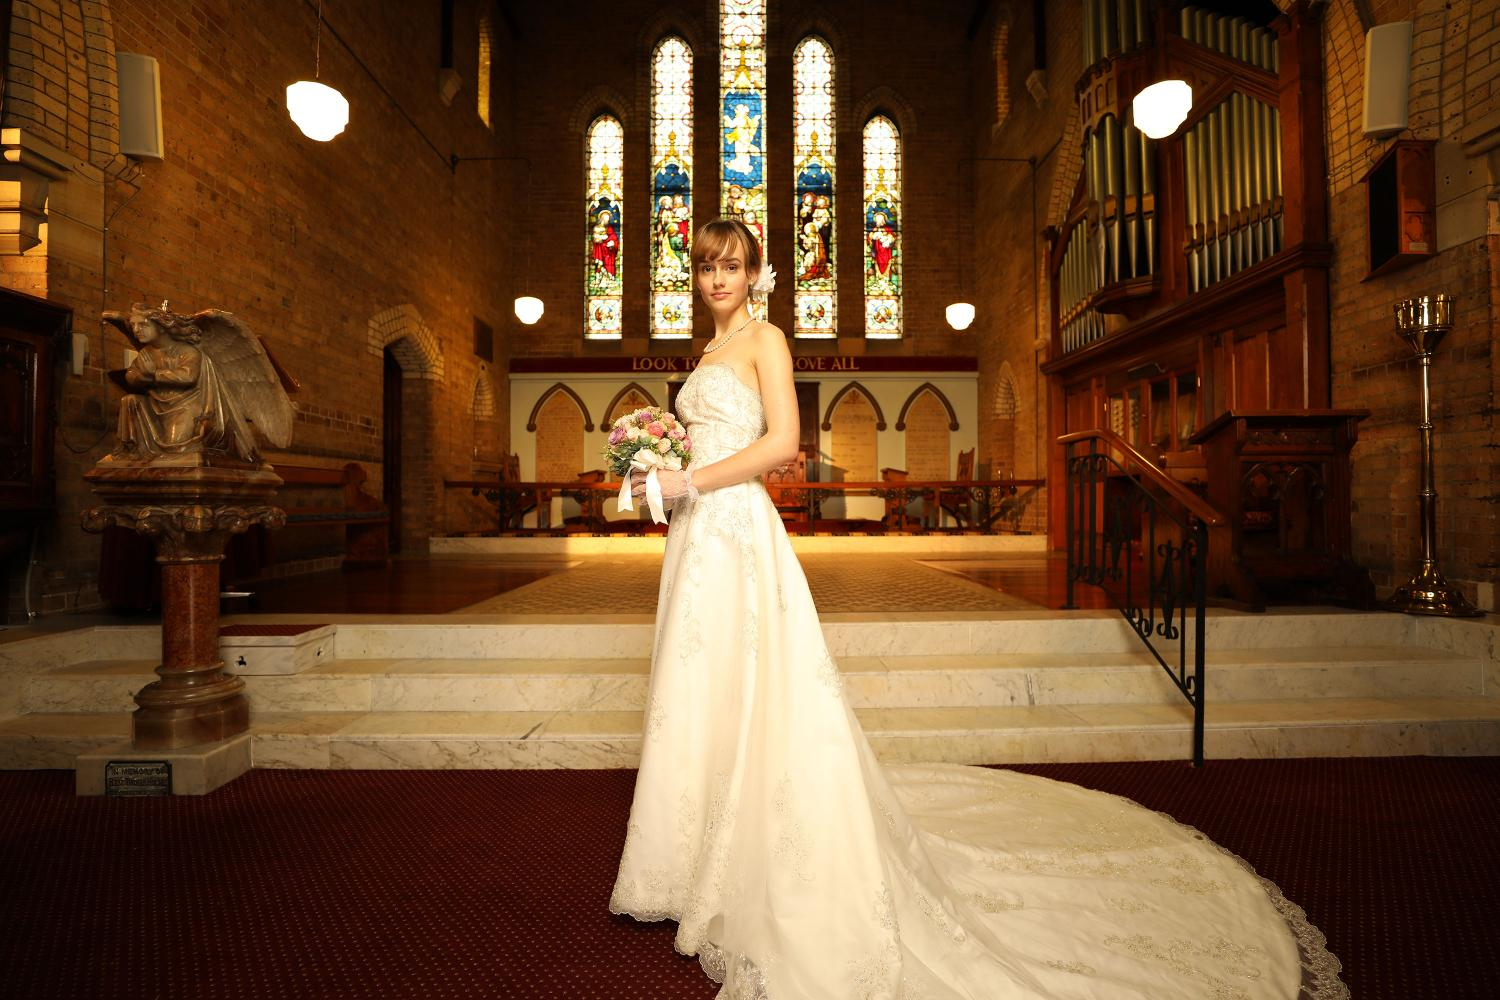 Bride in a white lace dress, standing inside a church with stained-glass windows, shot with Canon EF 16-35mm f/2.8L III Lens